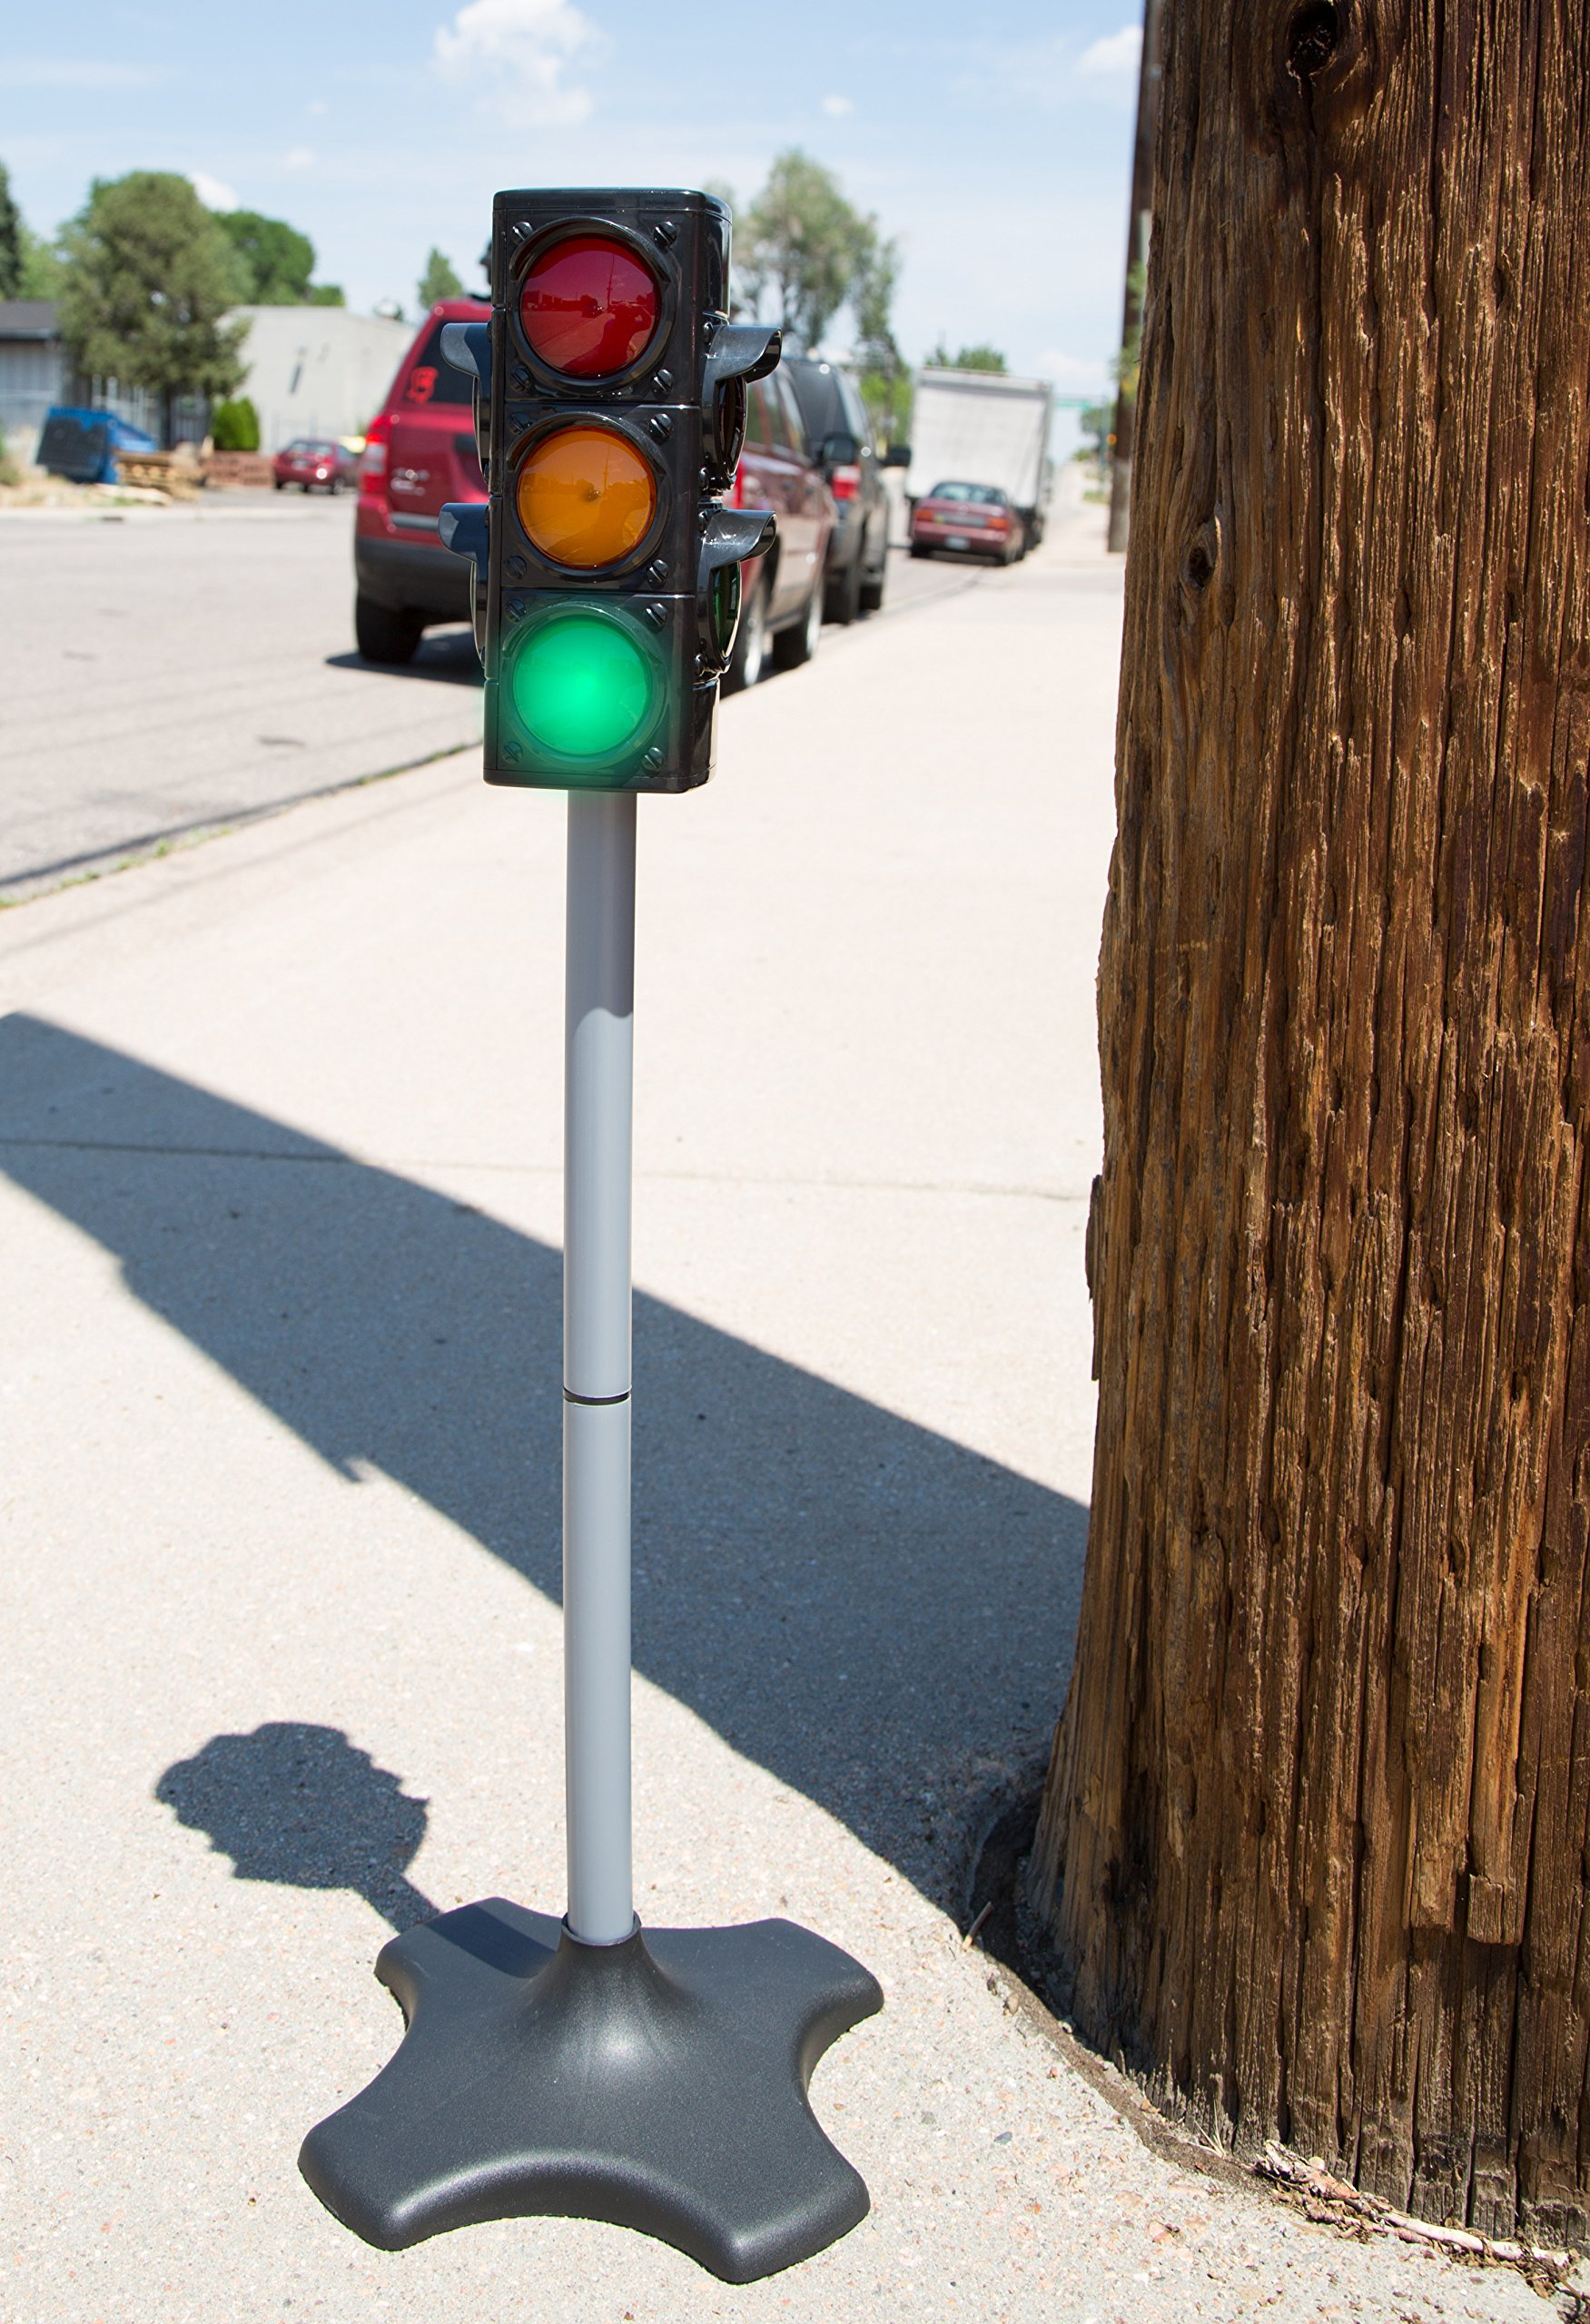 MMP Living Toy Traffic & Crosswalk Signal with Light & Sound - 4 Sided, Over 2 feet Tall by MMP Living (Image #6)